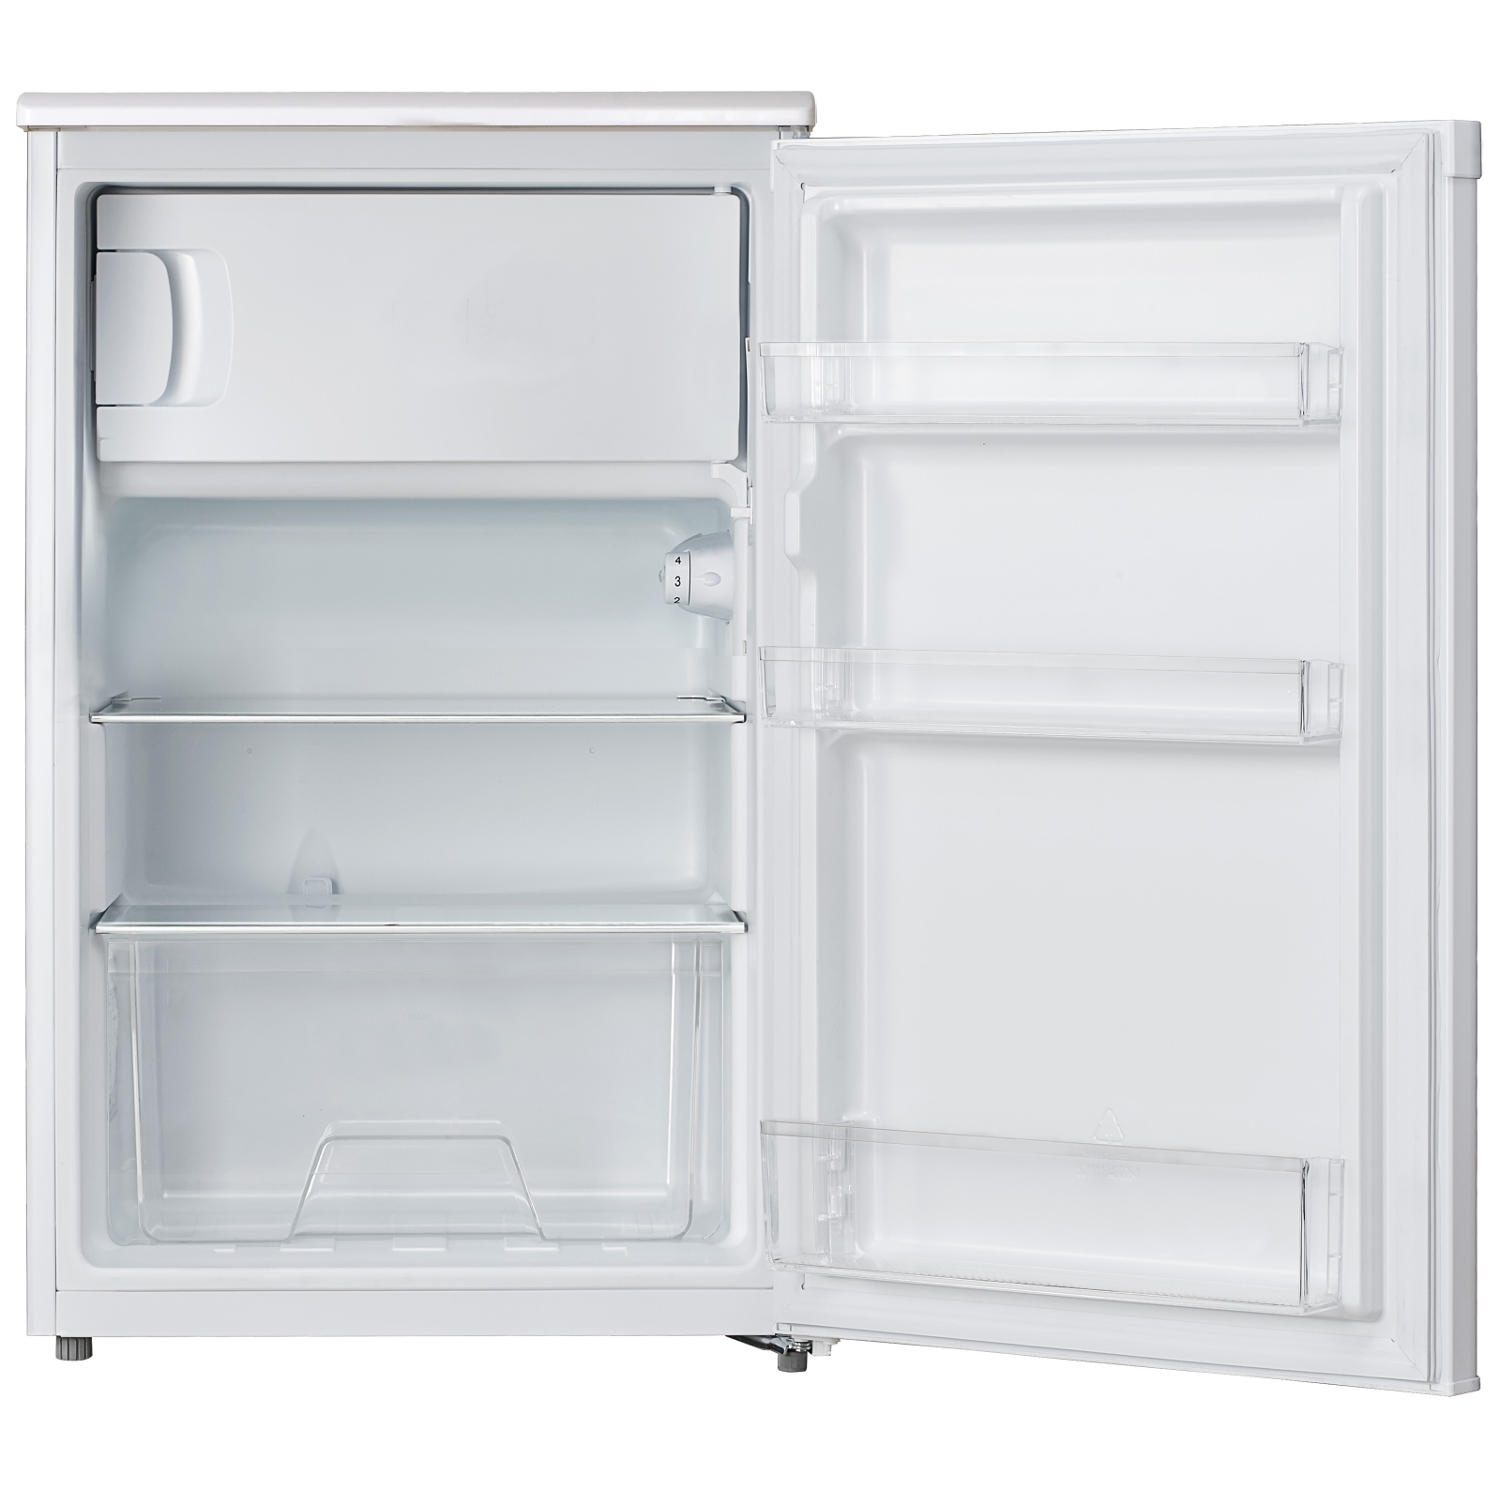 Lec 50cm Undercounter Fridge - White - A+ Rated - 1